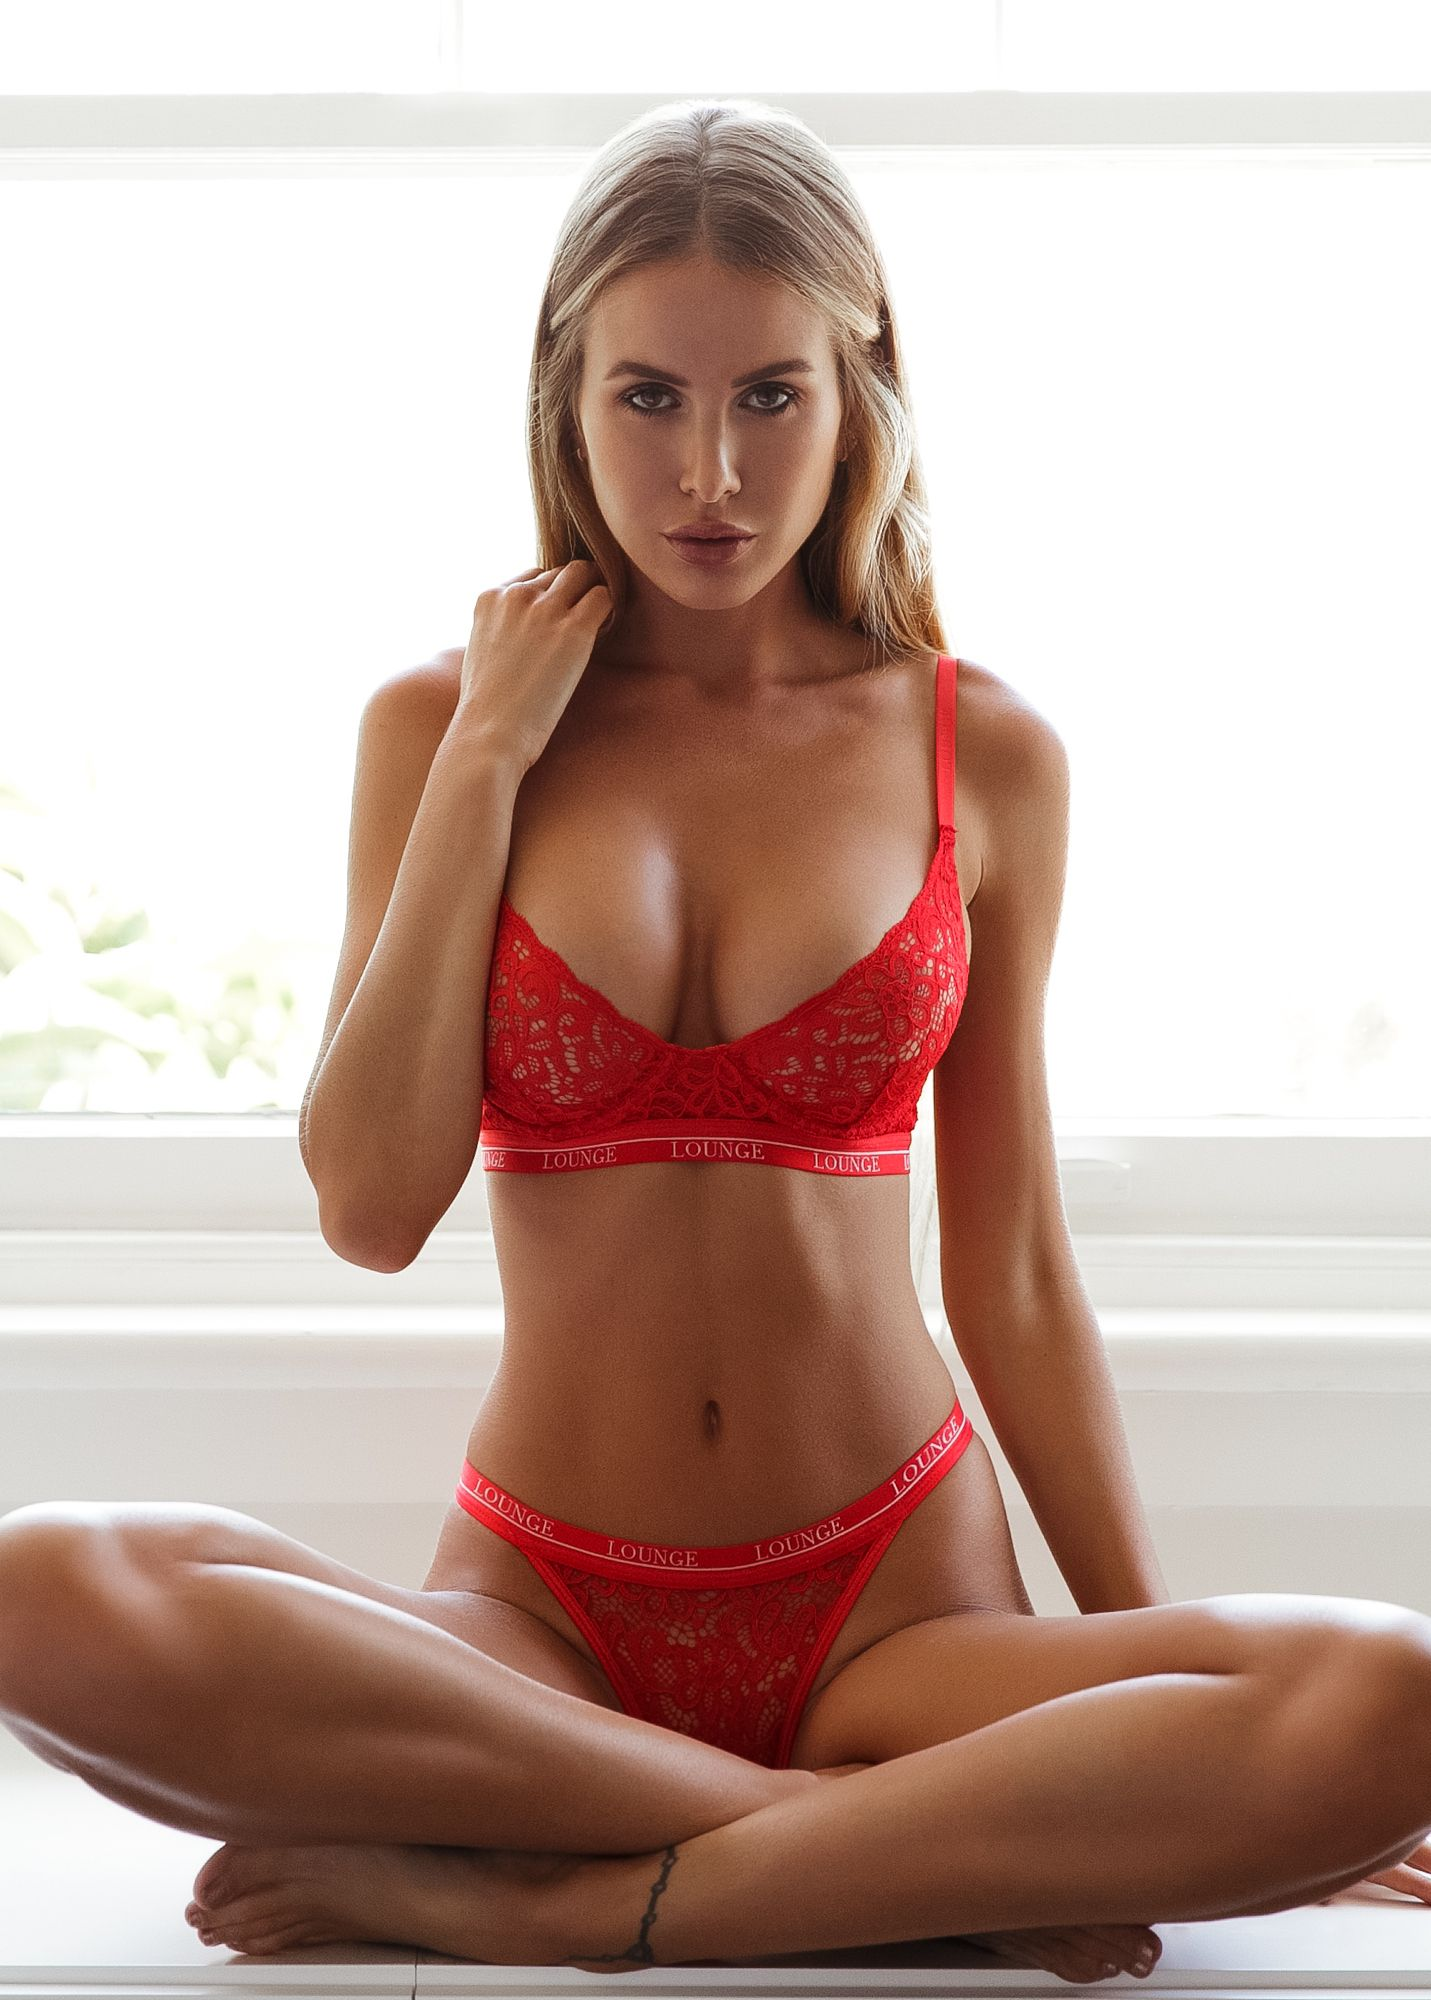 36b6f9c590 Use the code LOVETOLOUNGE for 10% off  loungeunderwear